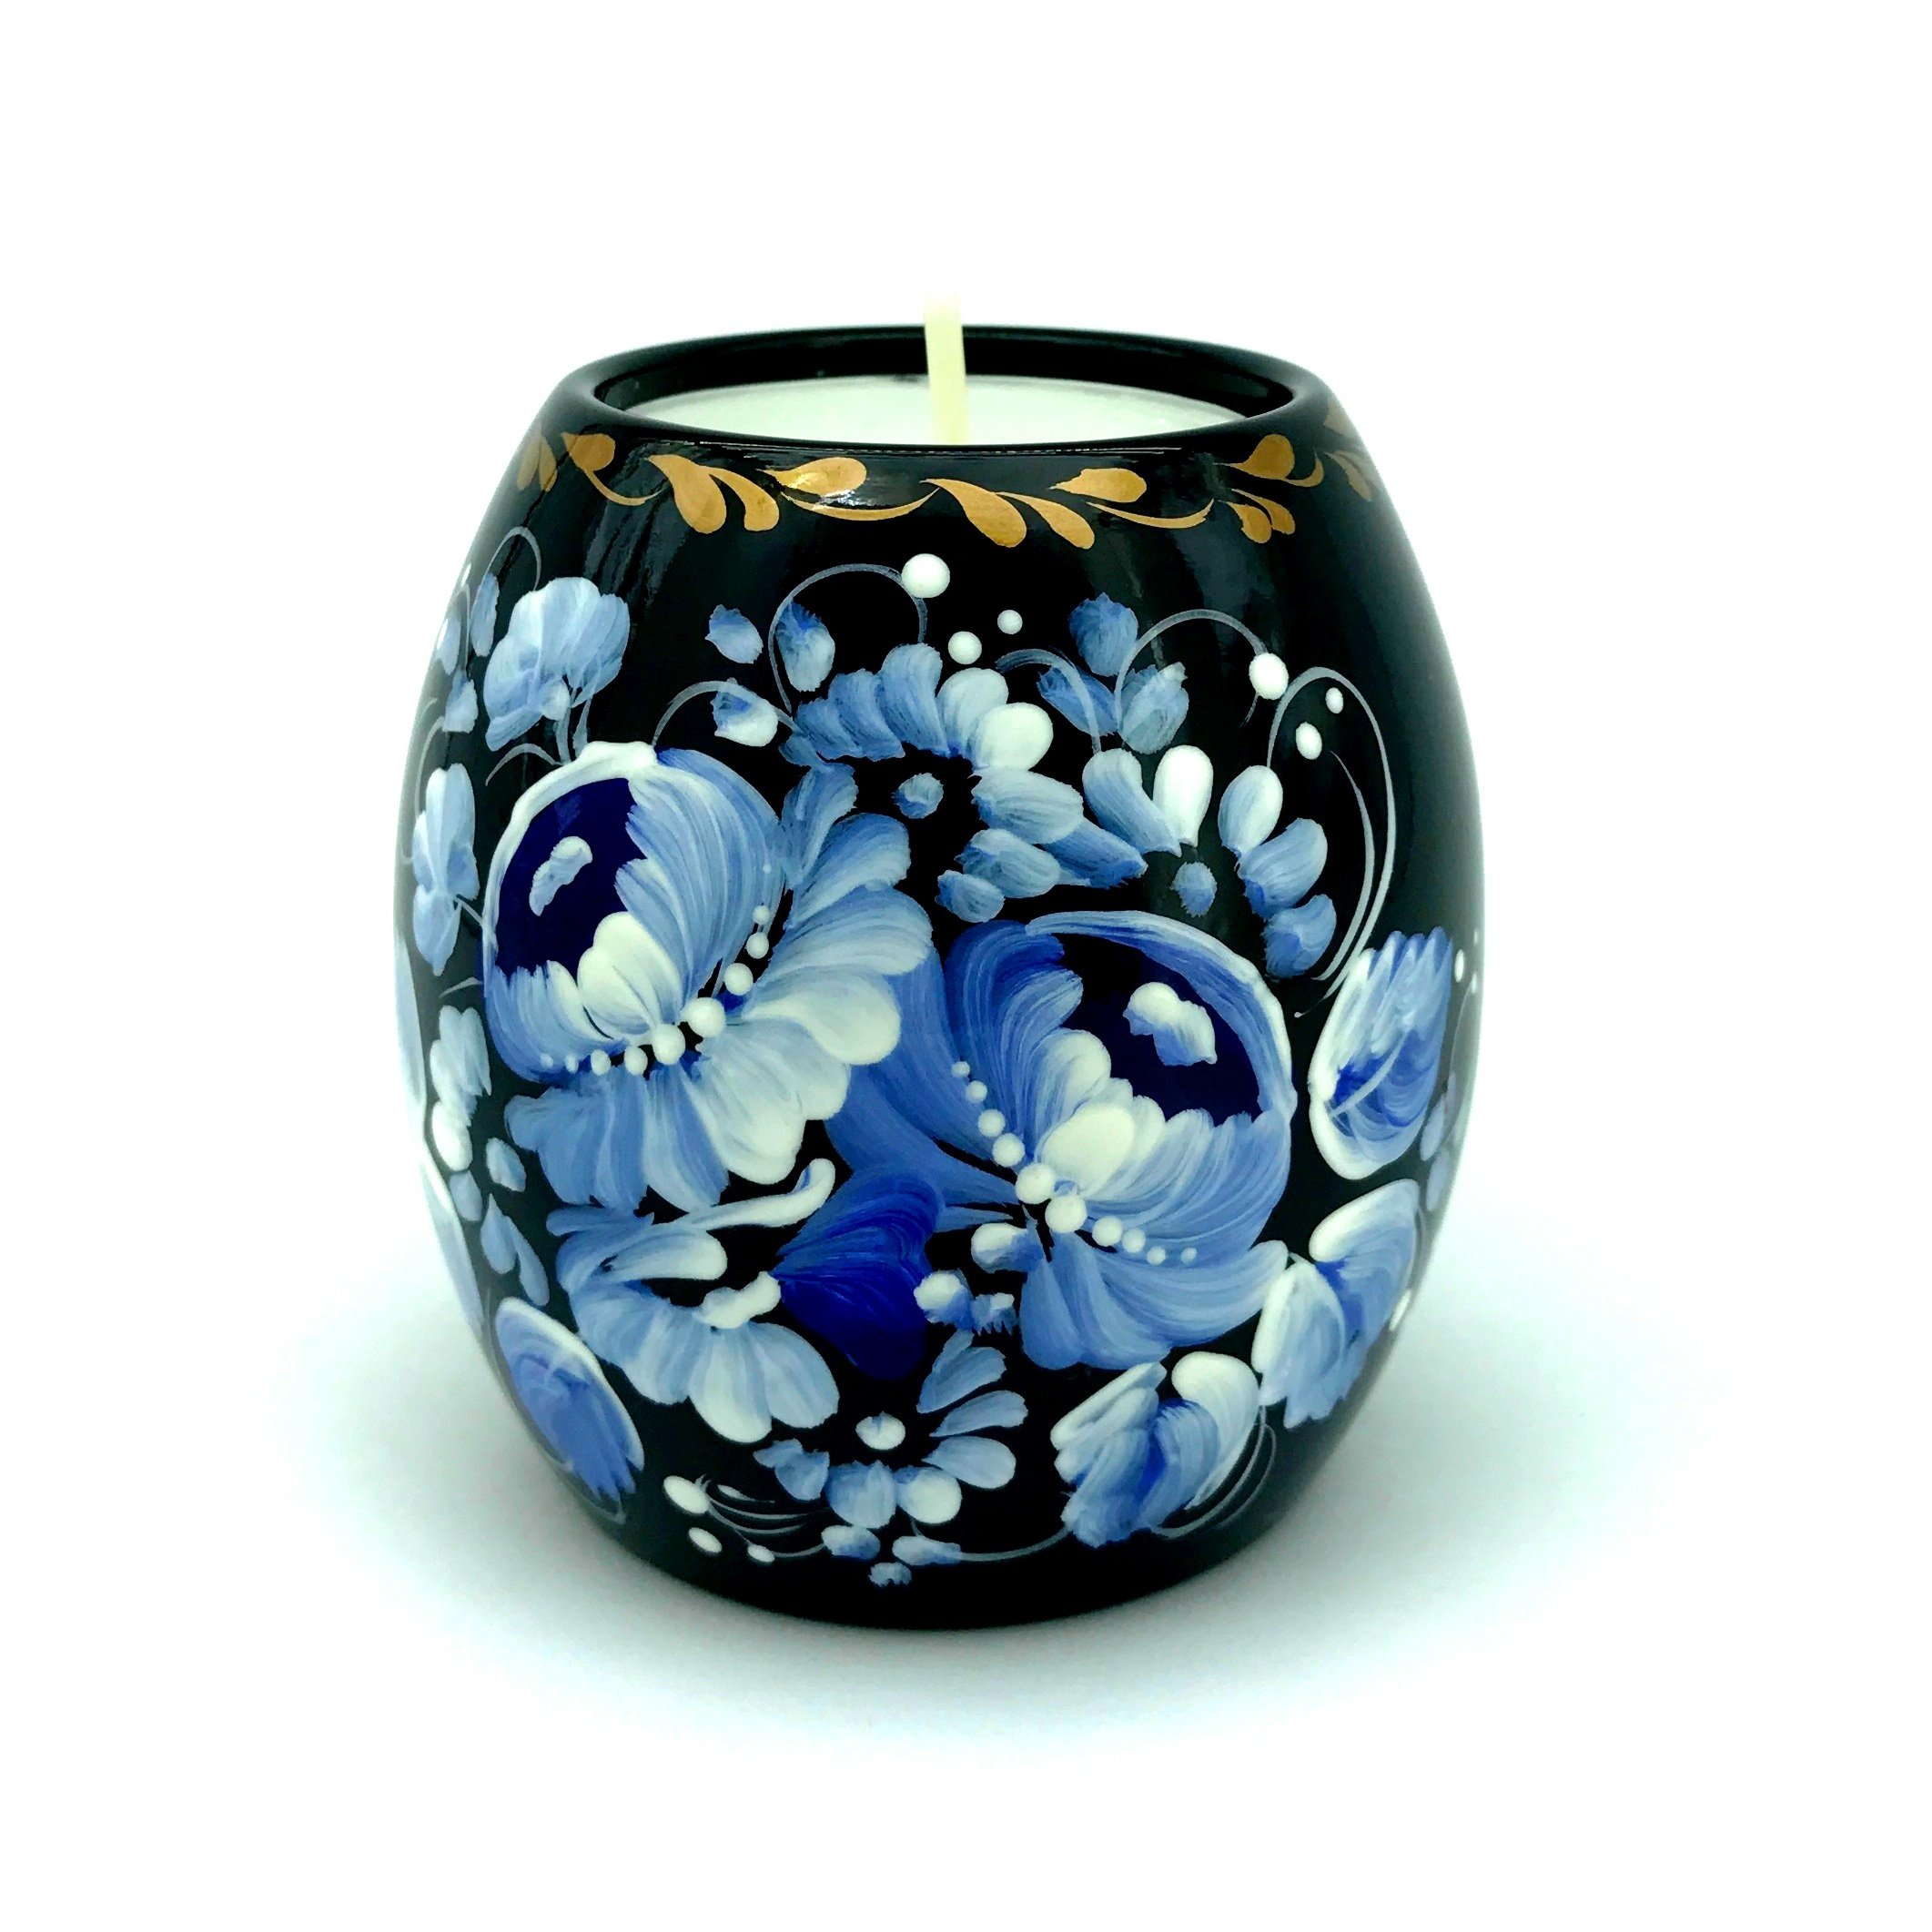 UA Creations Tealight candle holder hand painted ethnic floral design Christmas home décor accent gift for table, fireplace, living room, office or ethnic restaurant (Black and Blue) by UA Creations